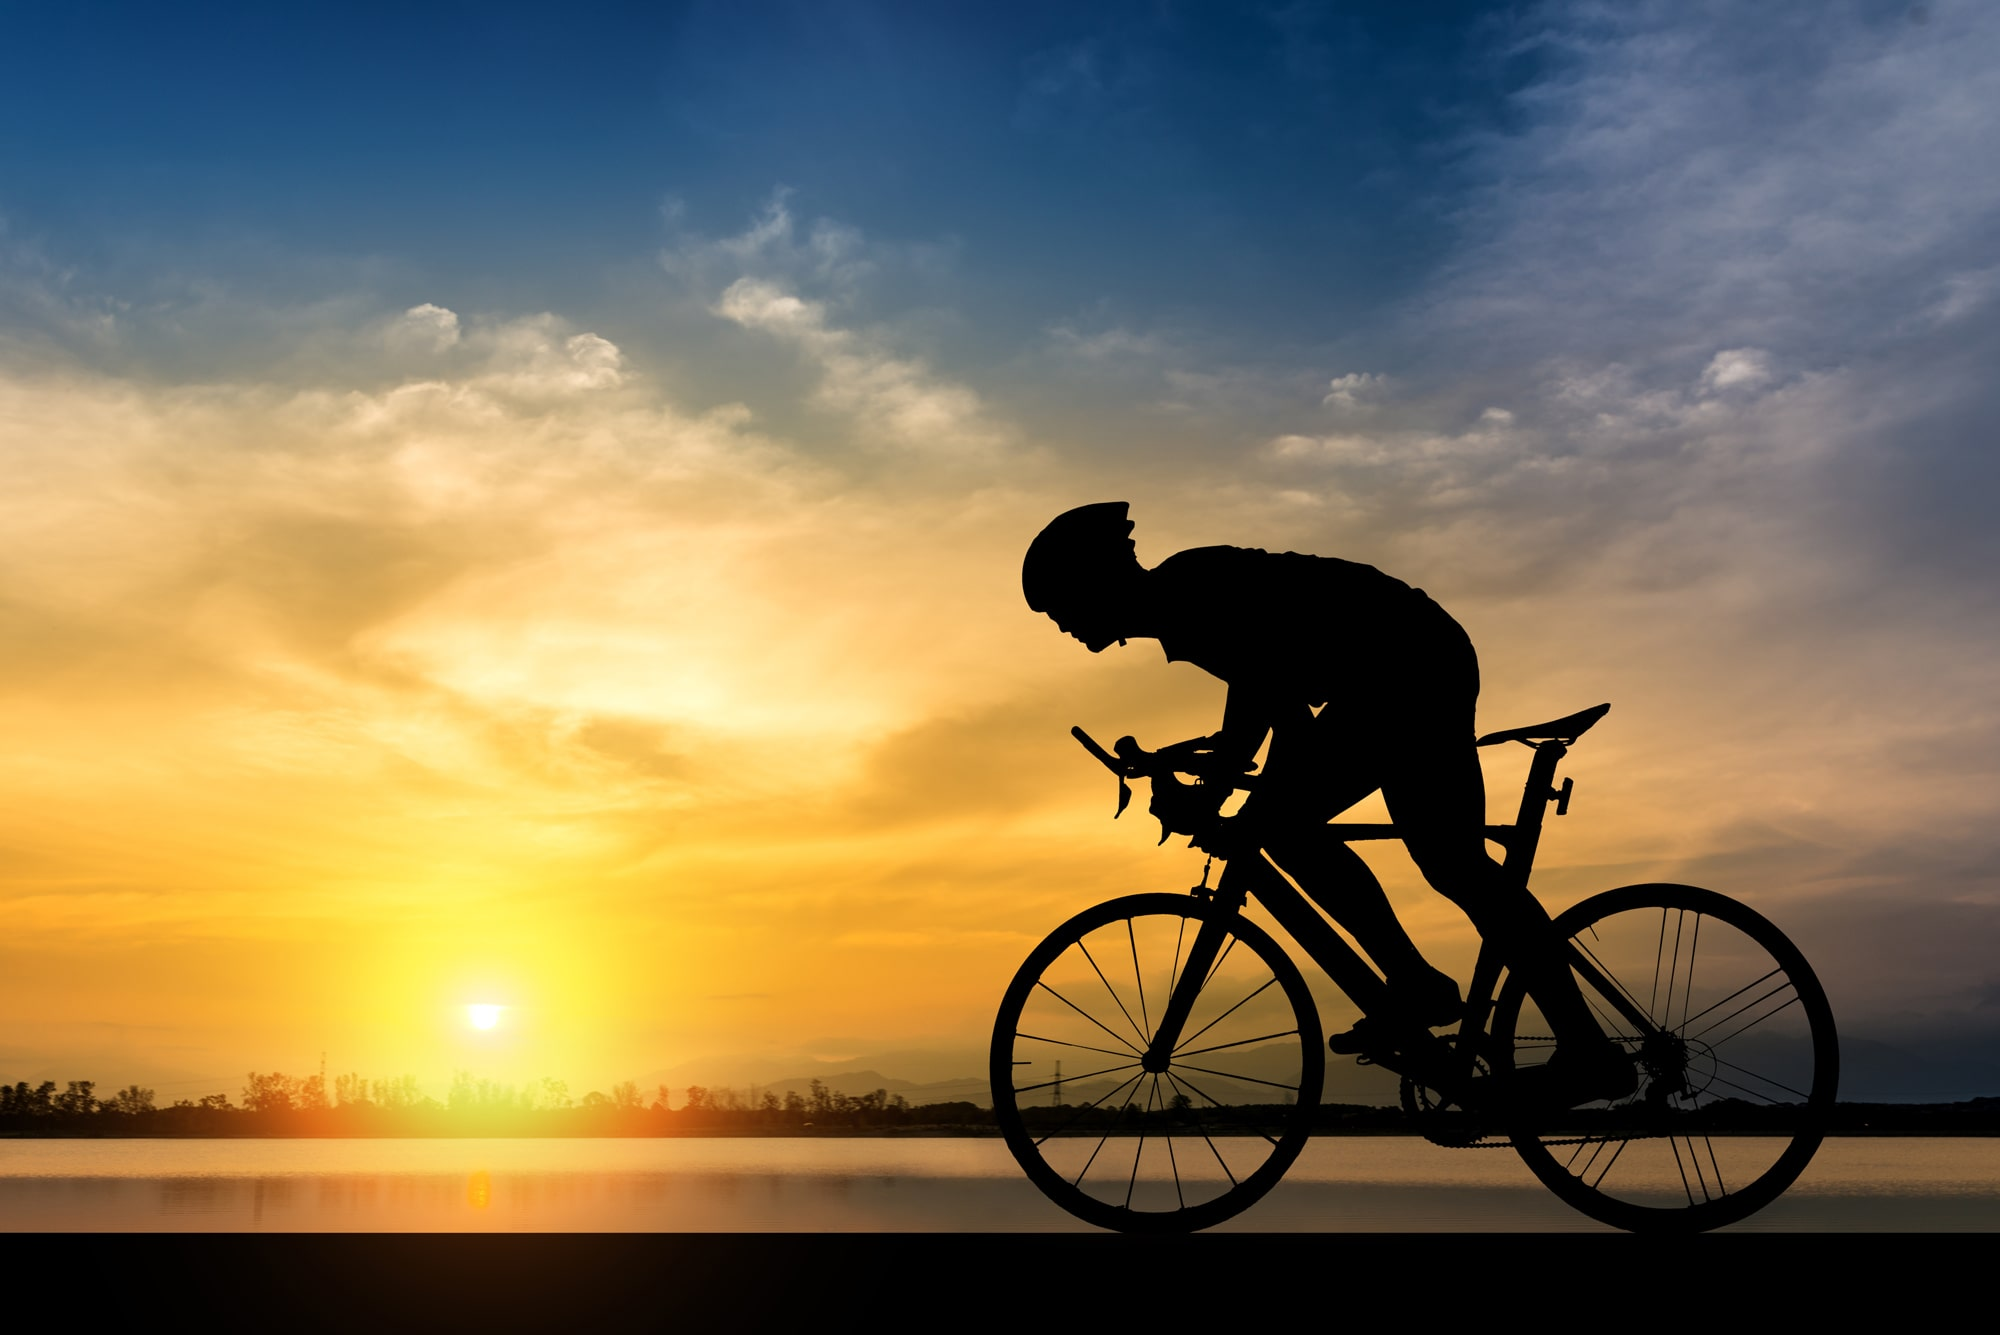 bicycle rider in front of a sunrise